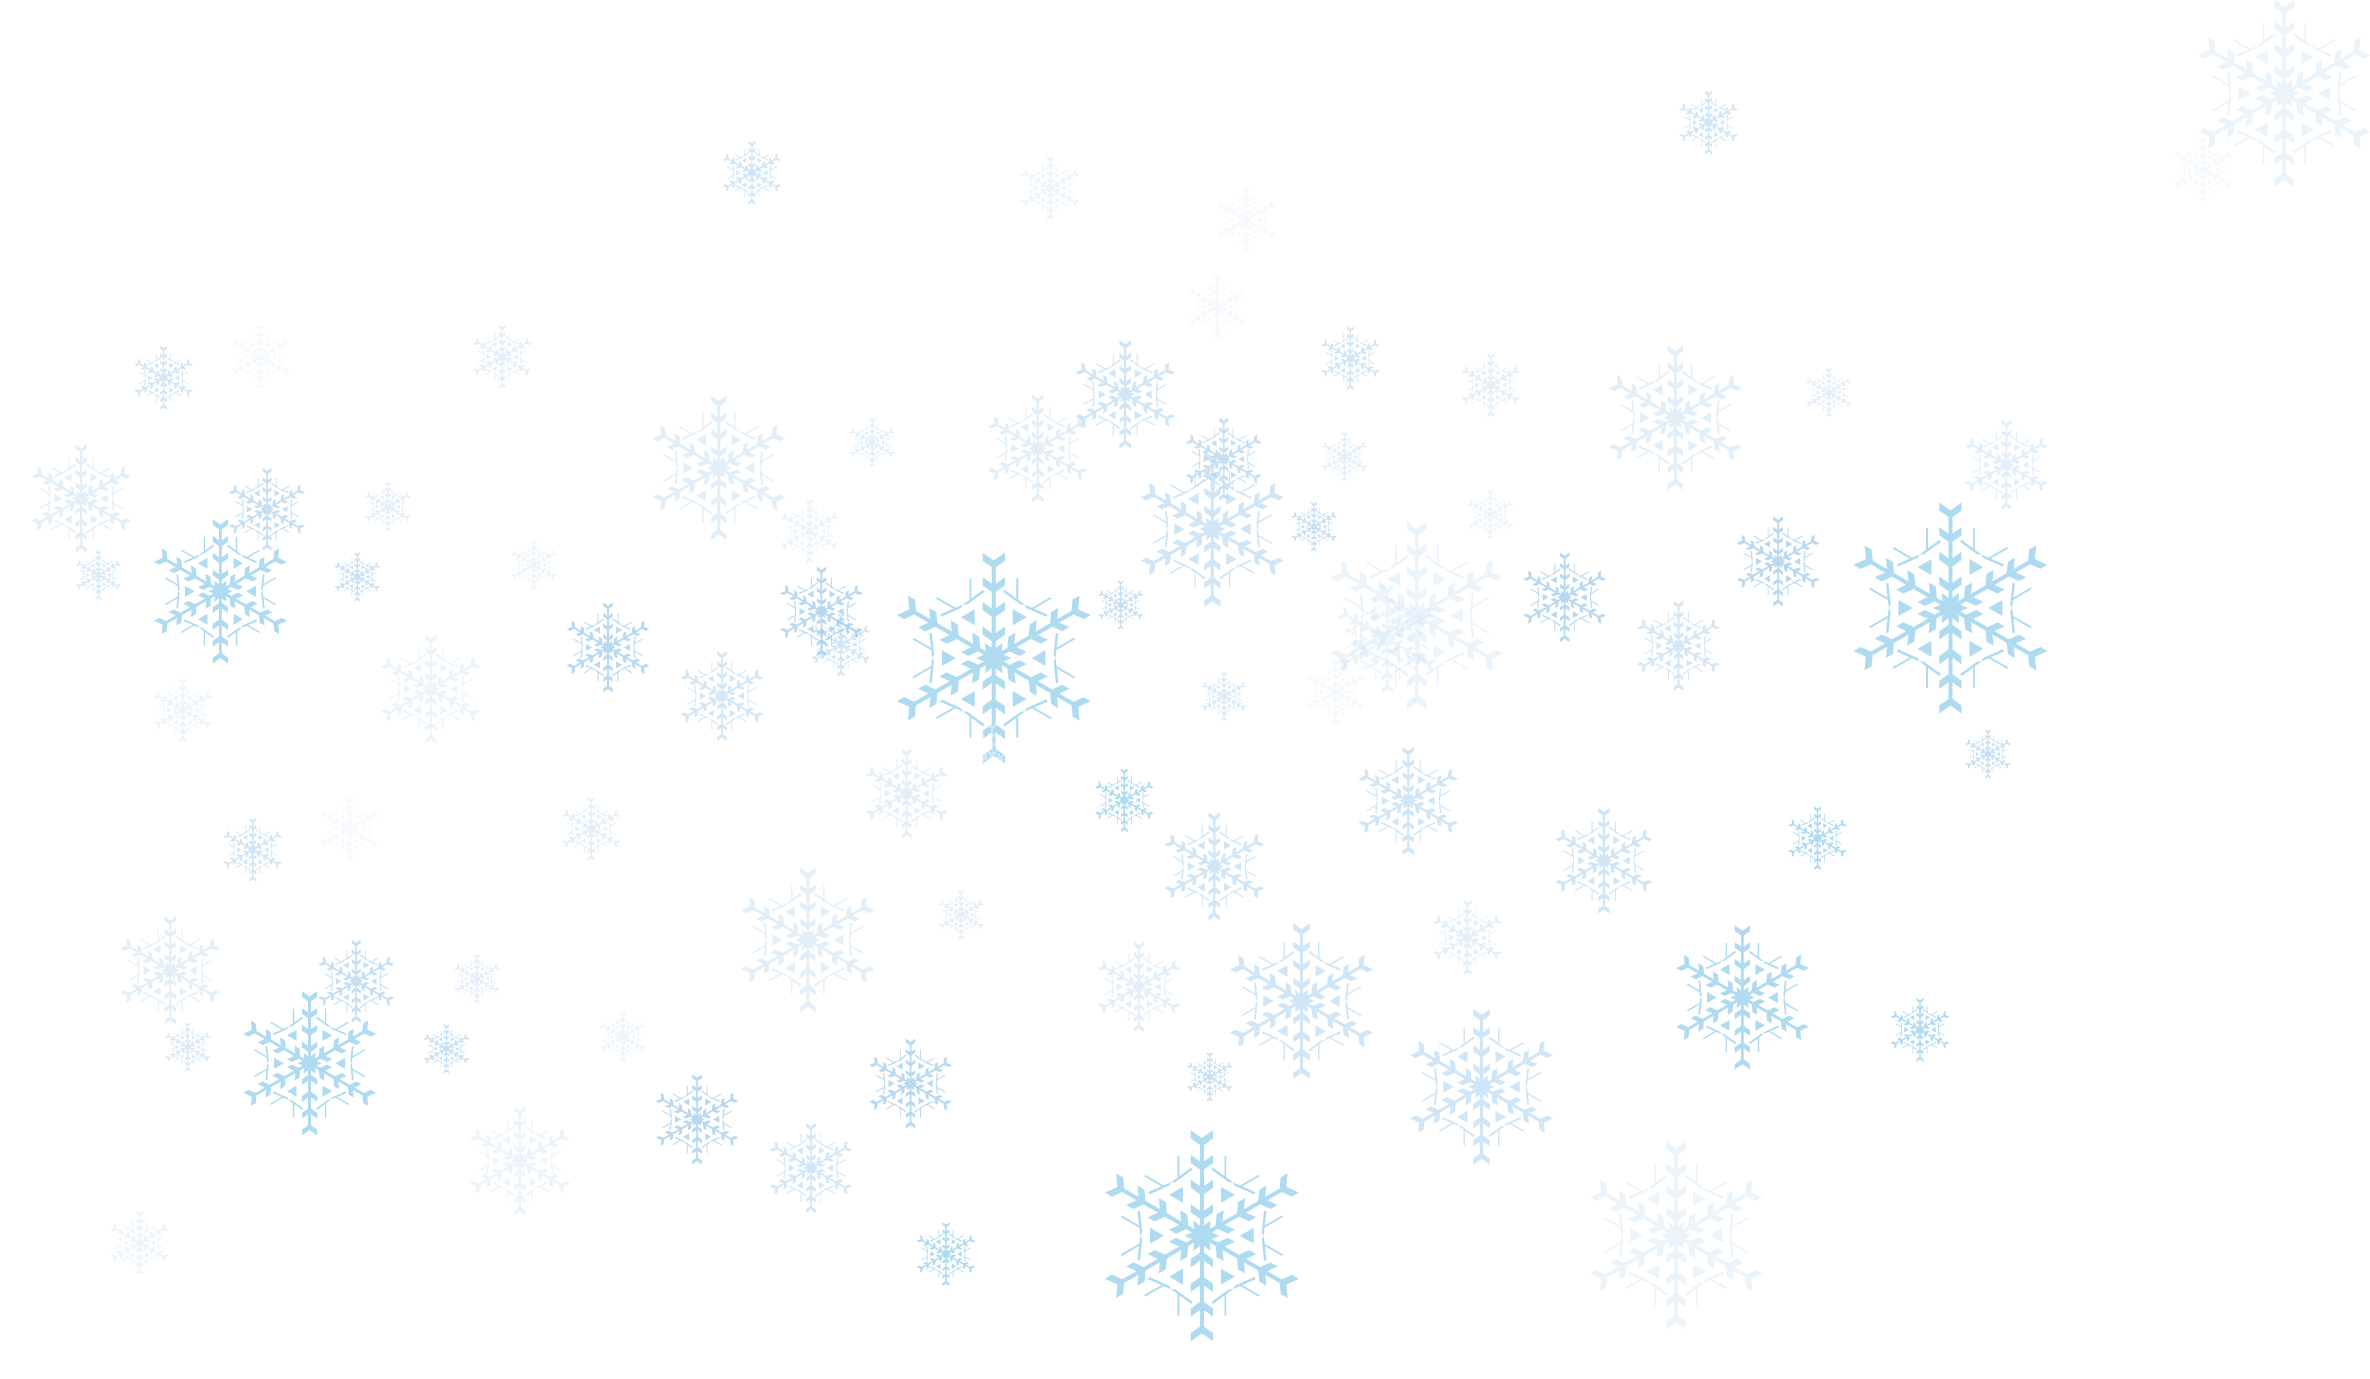 Snowflake clipart sketch graphic library download 28+ Collection of Snowflake Clipart Background | High quality, free ... graphic library download